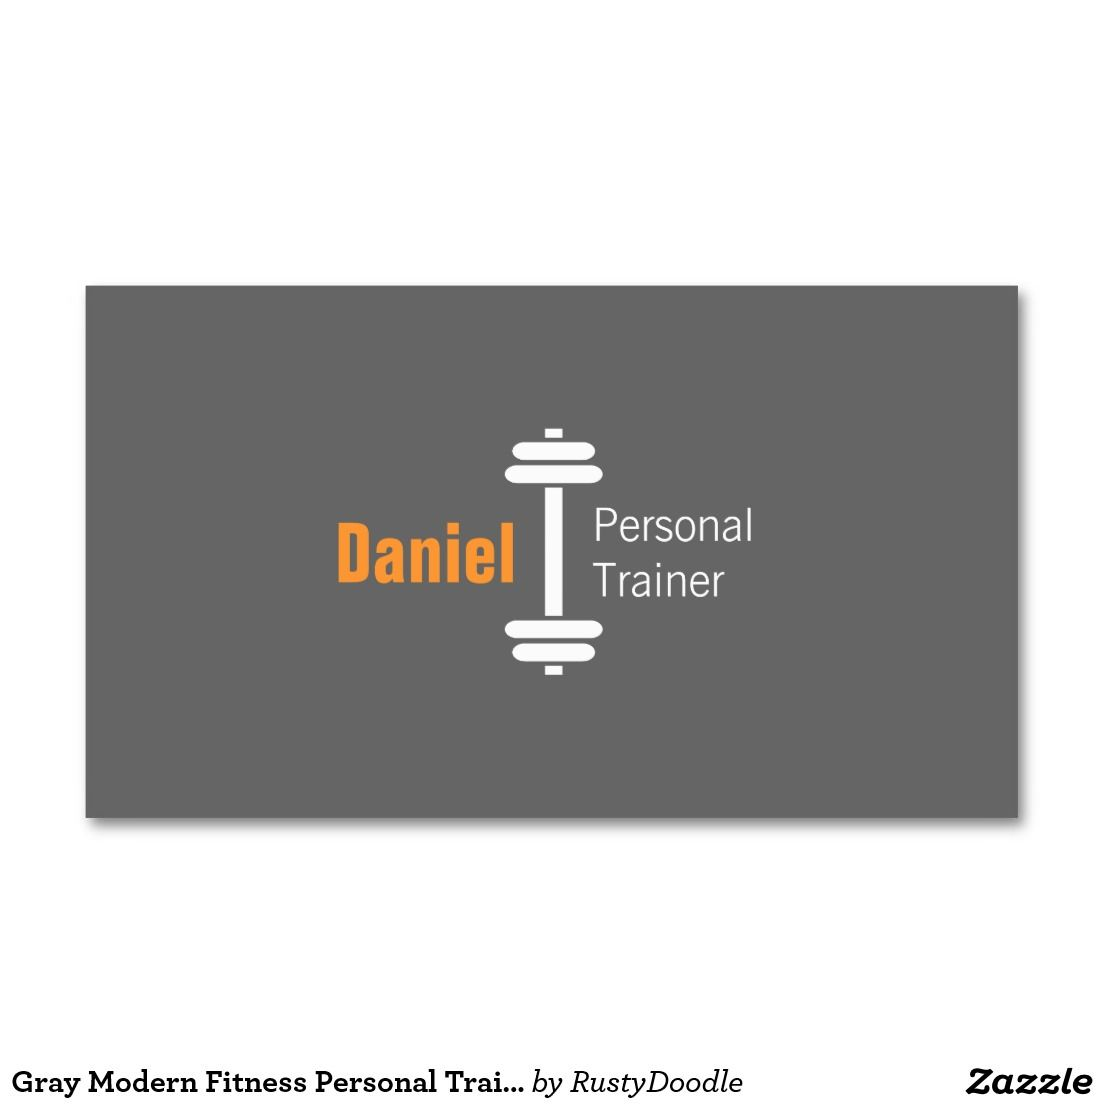 Gray Modern Fitness Personal Trainer Weights Business Card ...